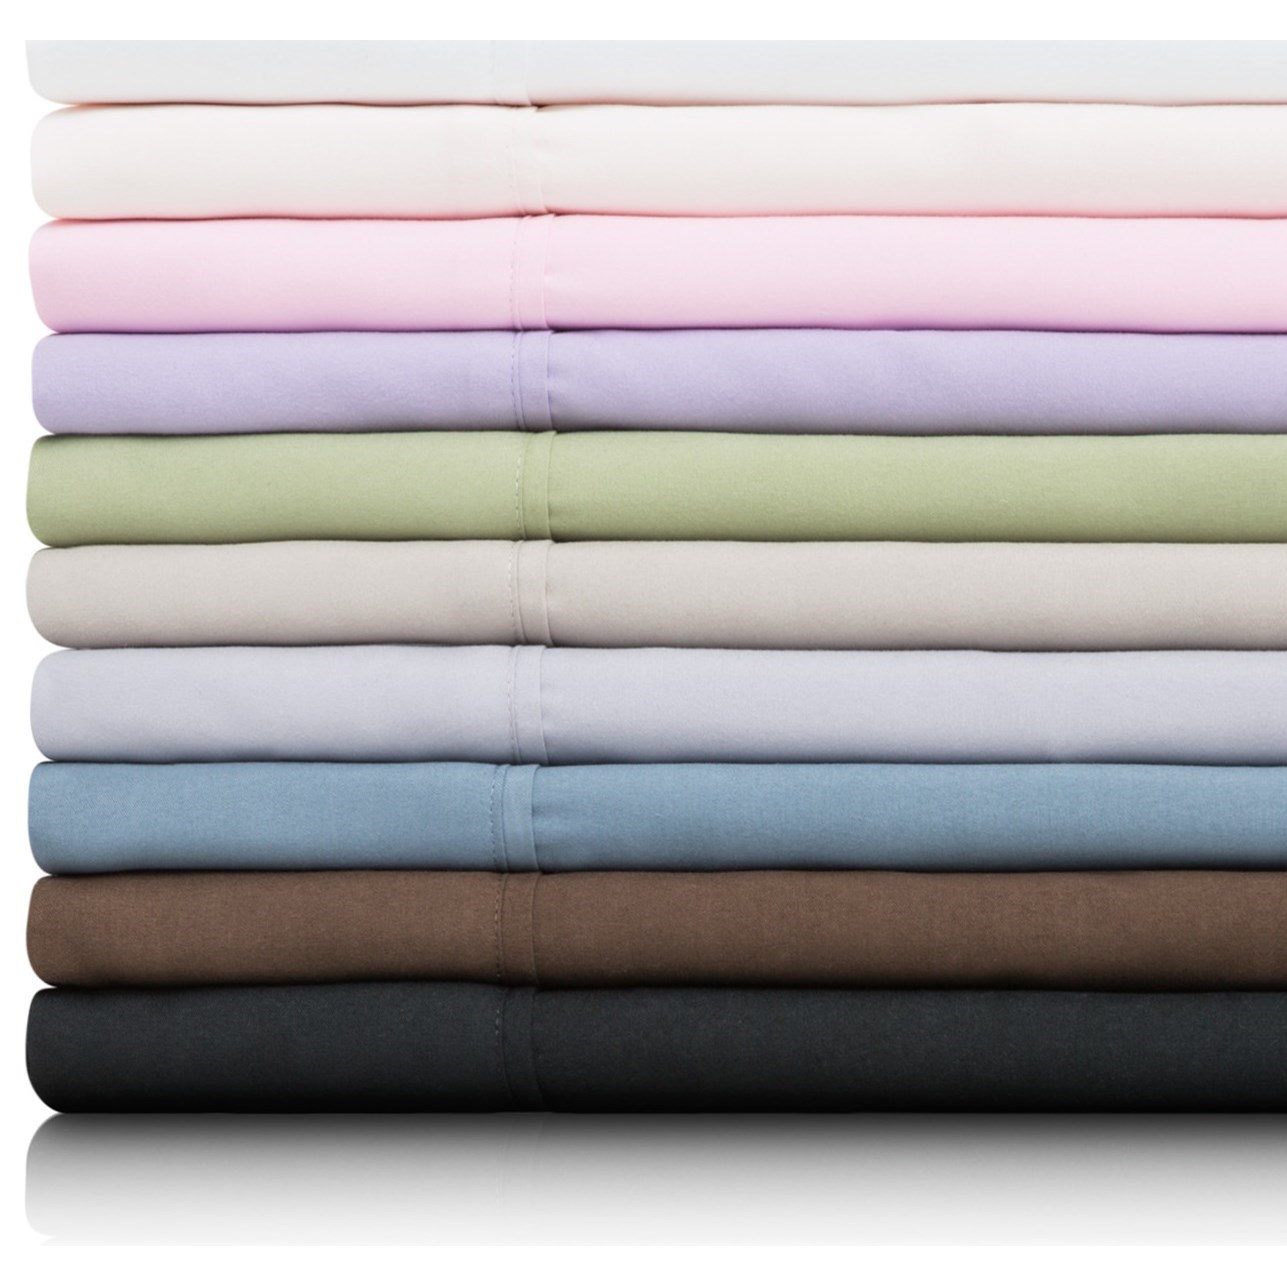 Malouf Brushed Microfiber Queen Woven™ Brushed Microfiber Pillowcases  - Item Number: MA90QQBHPC